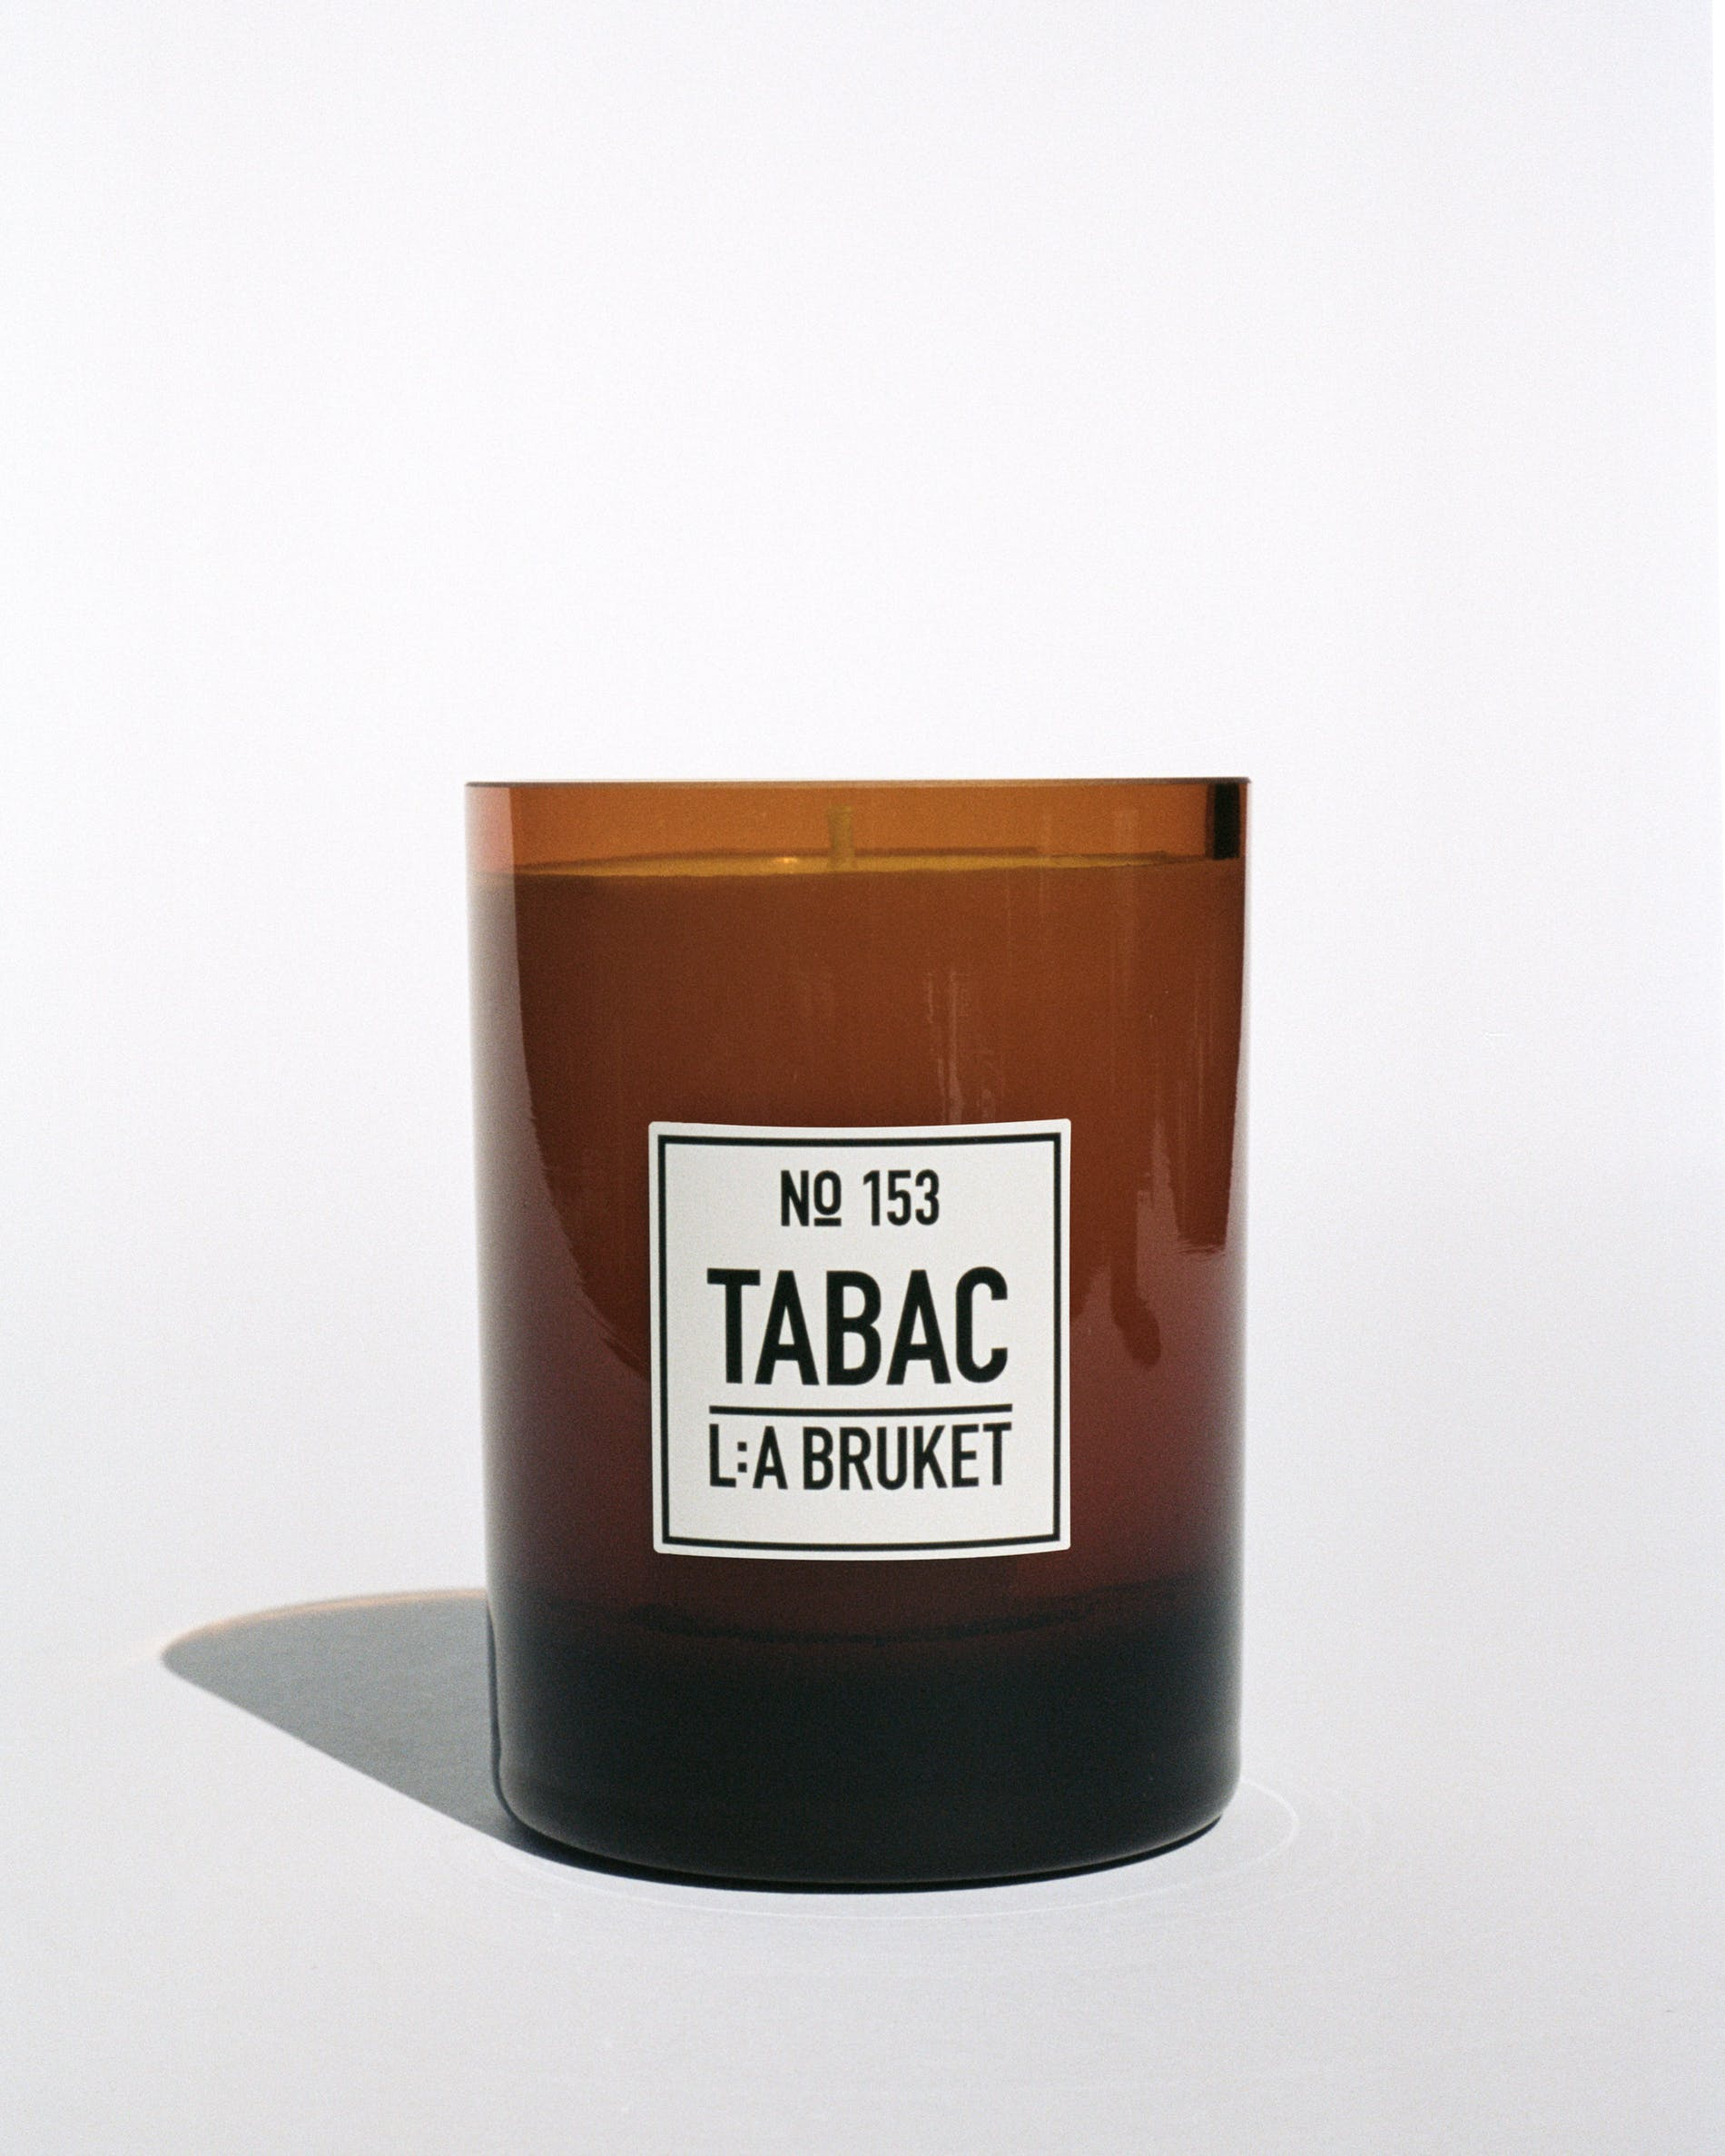 L:A Bruket 153 Scented Candle, Tabac, 260g